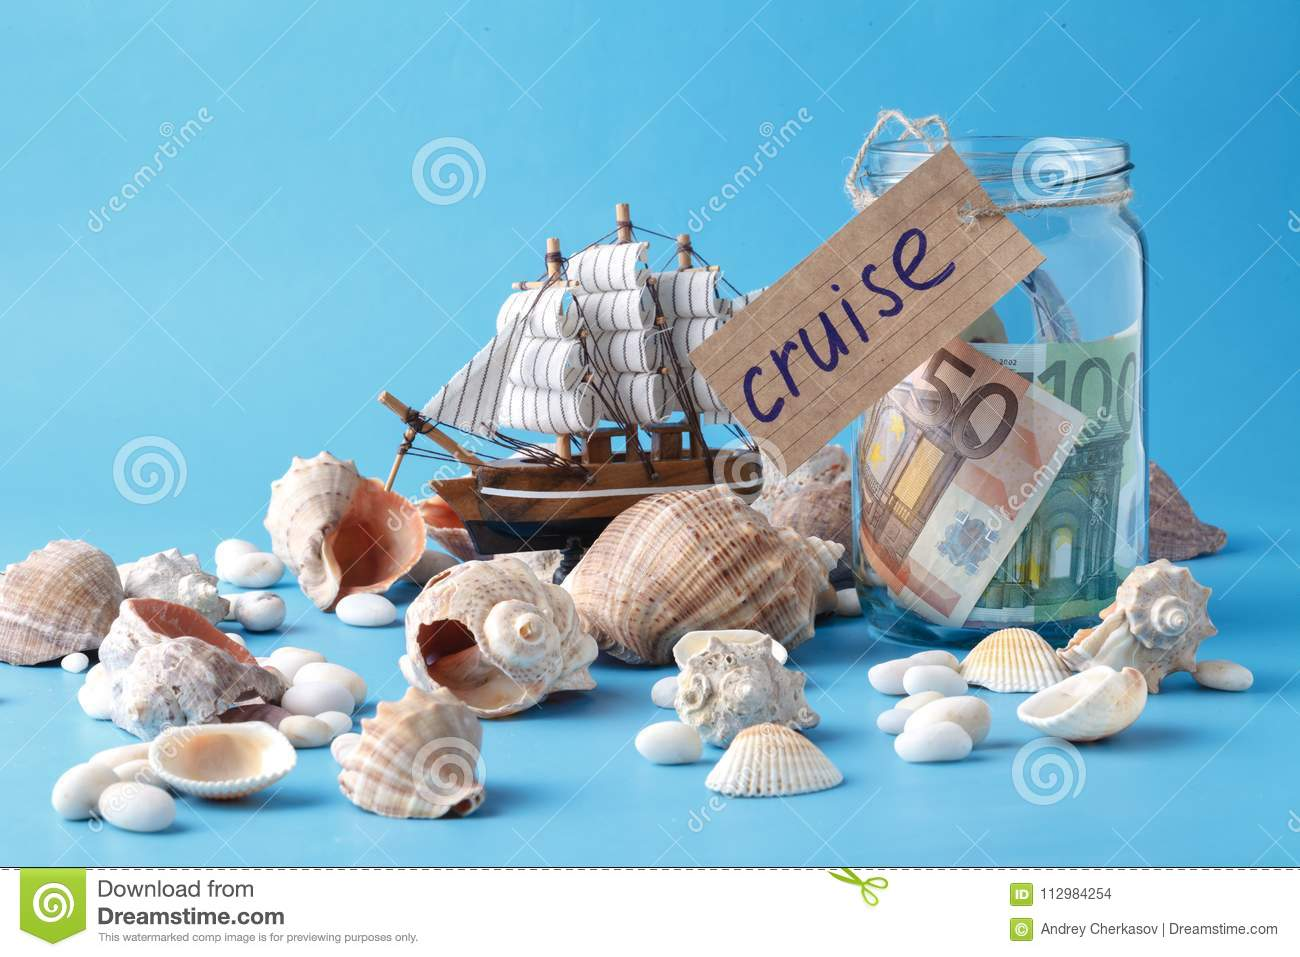 Sea shells on blue, vacaton concept on plain background